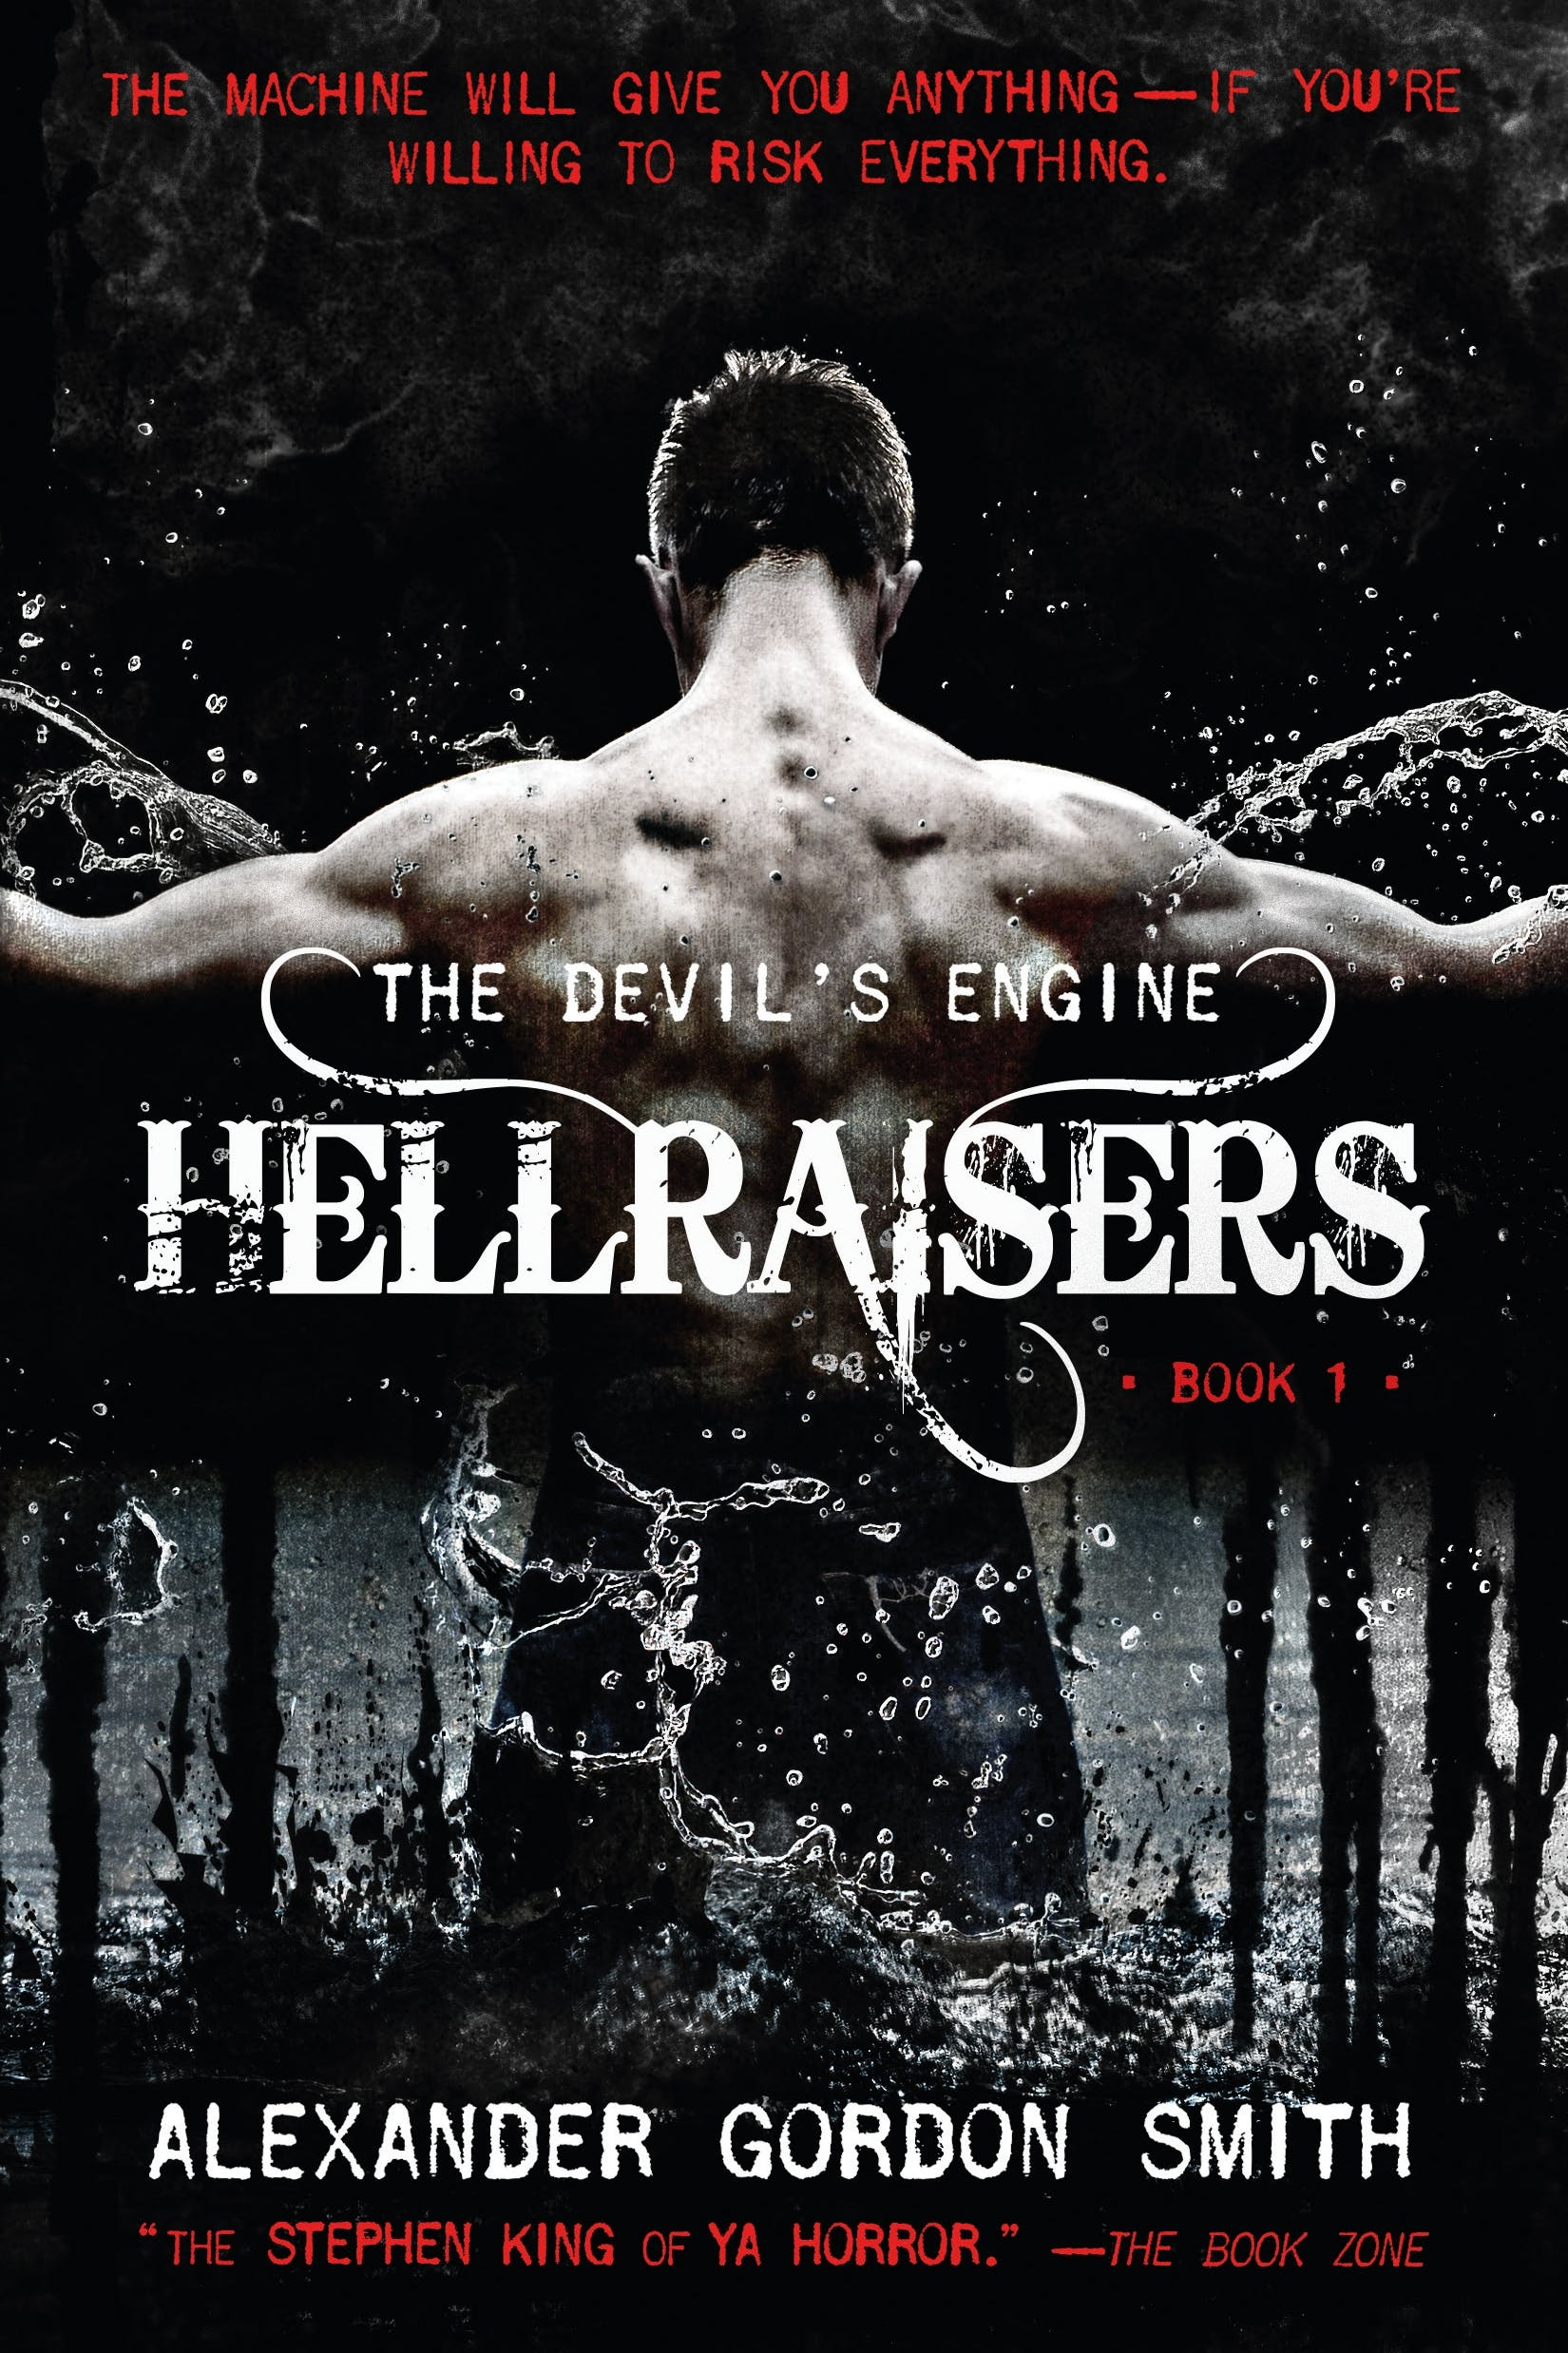 Image of The Devil's Engine: Hellraisers